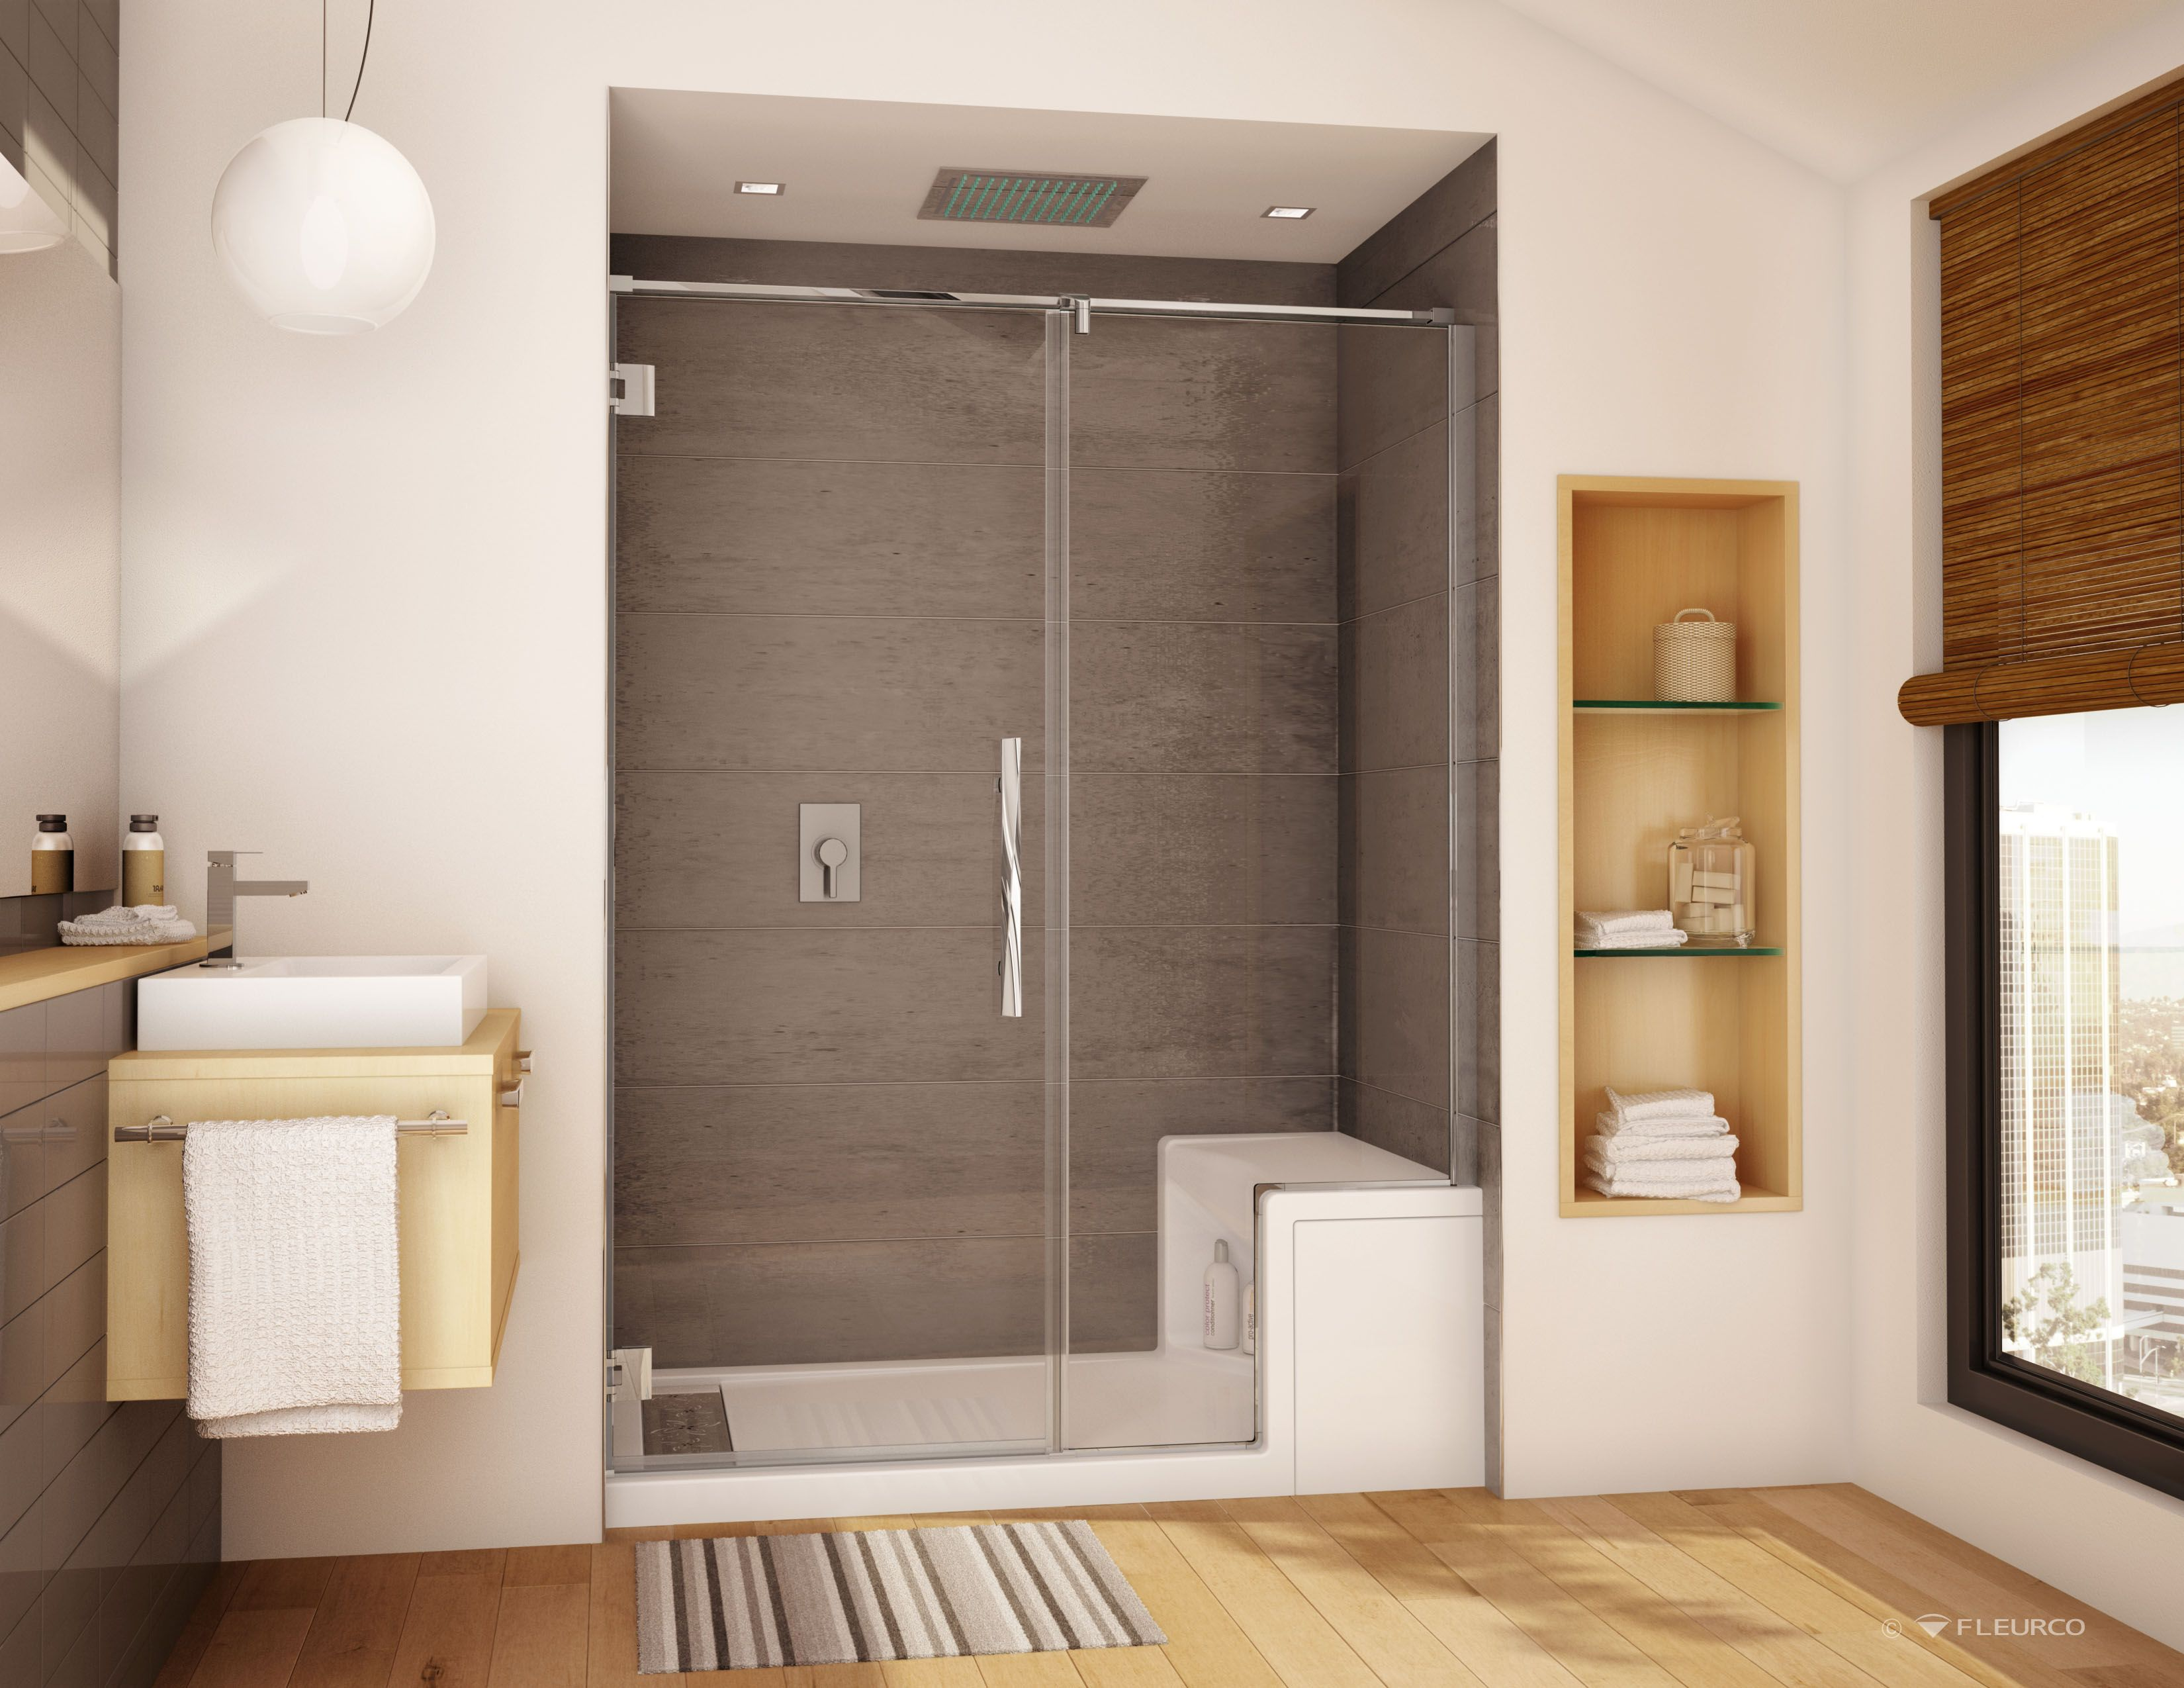 Stylish Wall Mount Hinge Shower Door And Panel With Shower